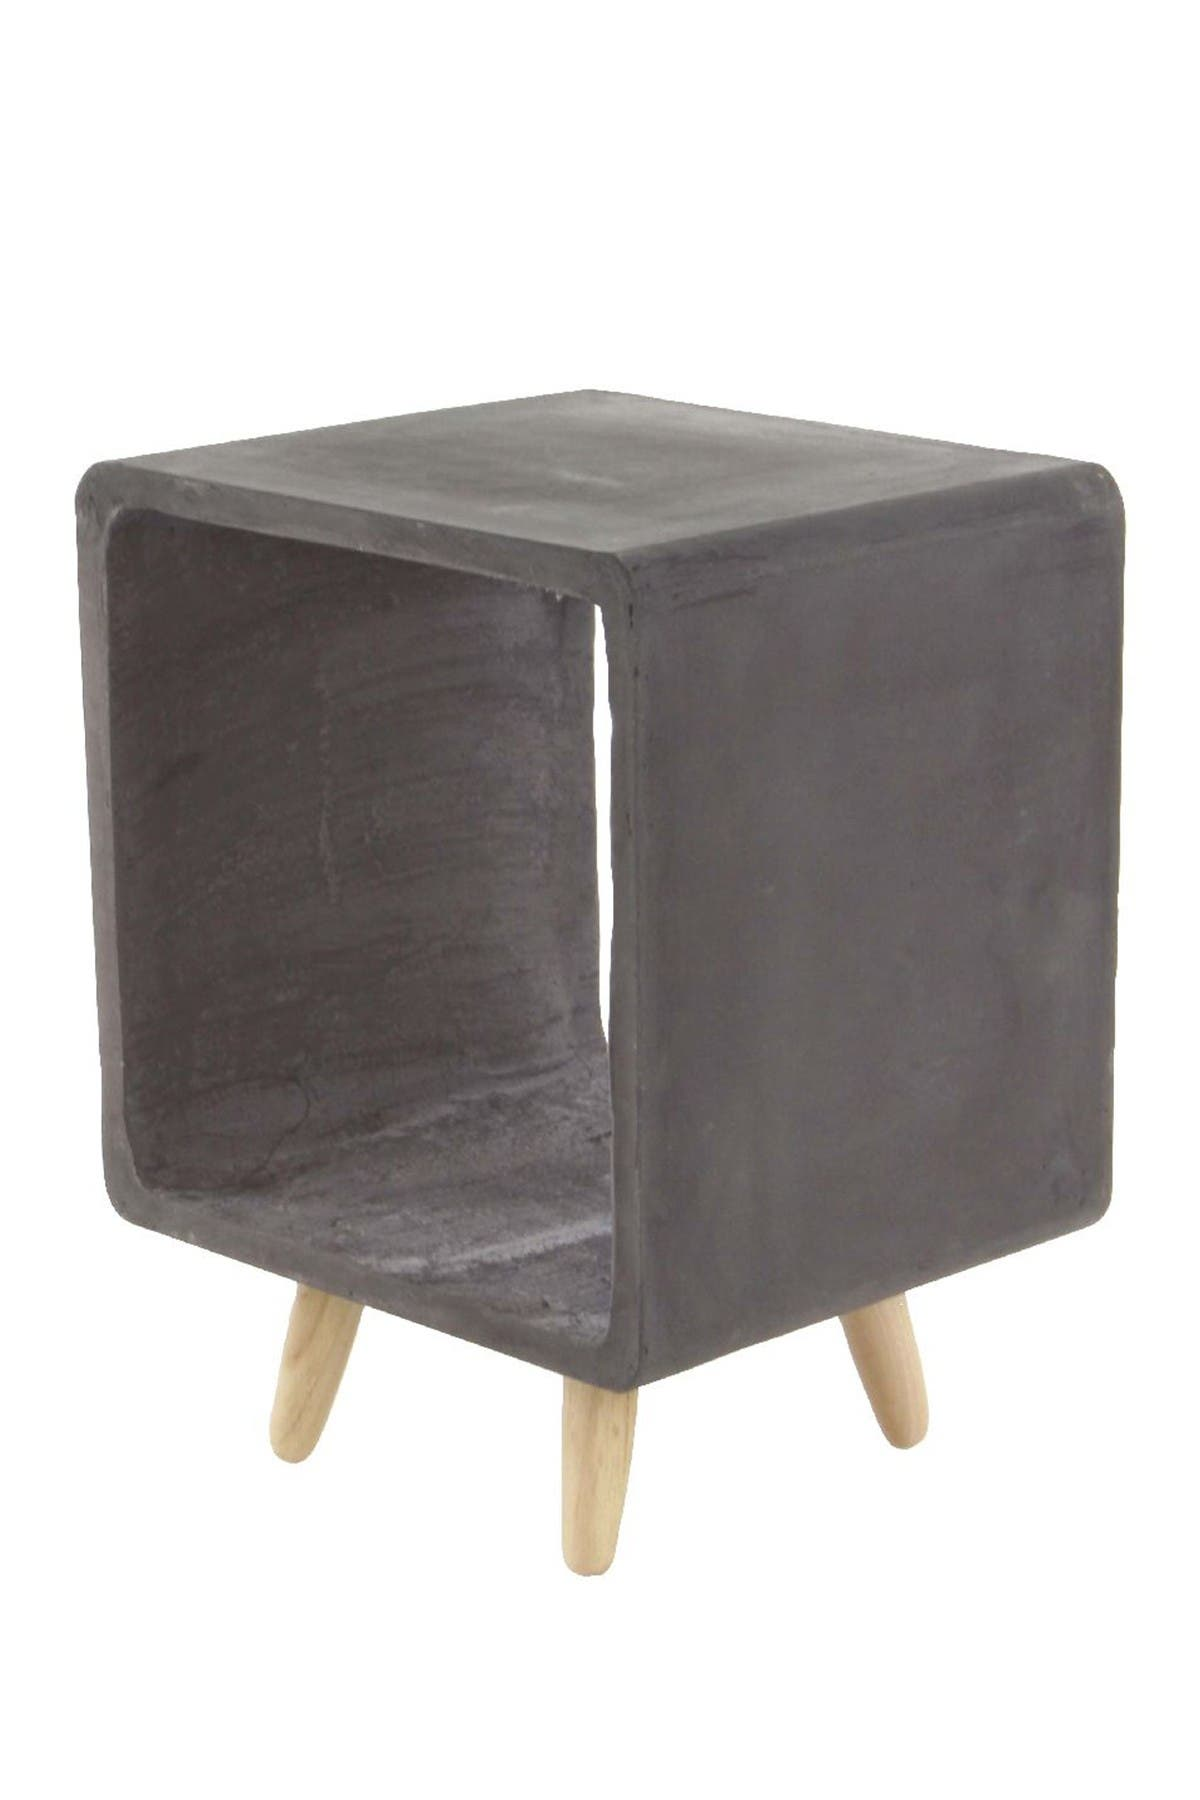 Image of Willow Row Contemporary Square Fiberclay Accent Table